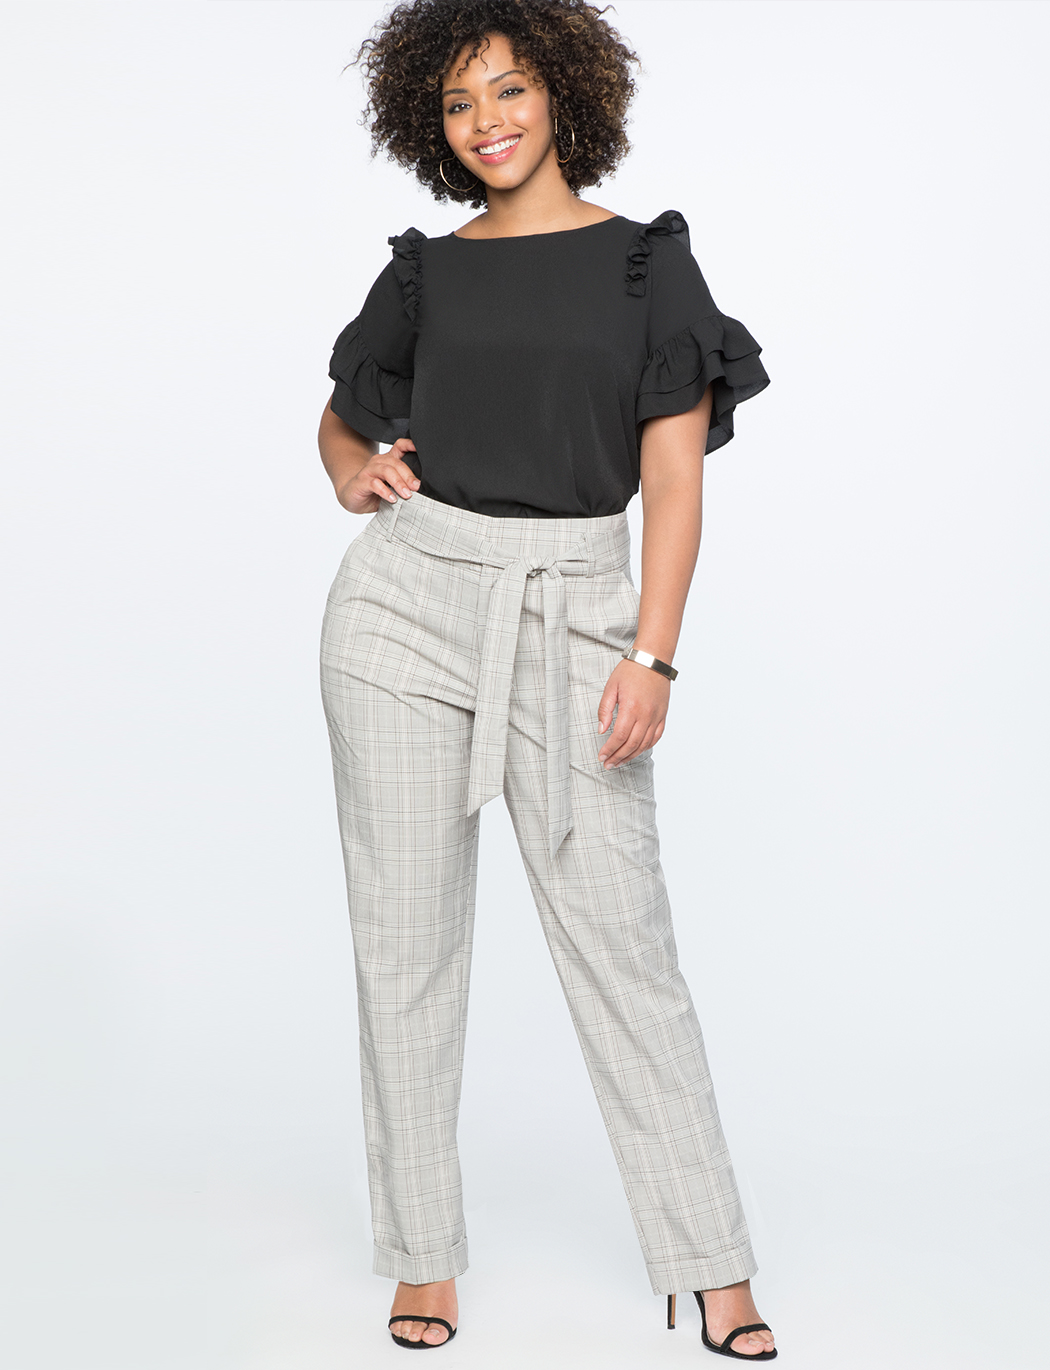 6c739975b0a High Waisted Plaid Cuff Pant with Tie